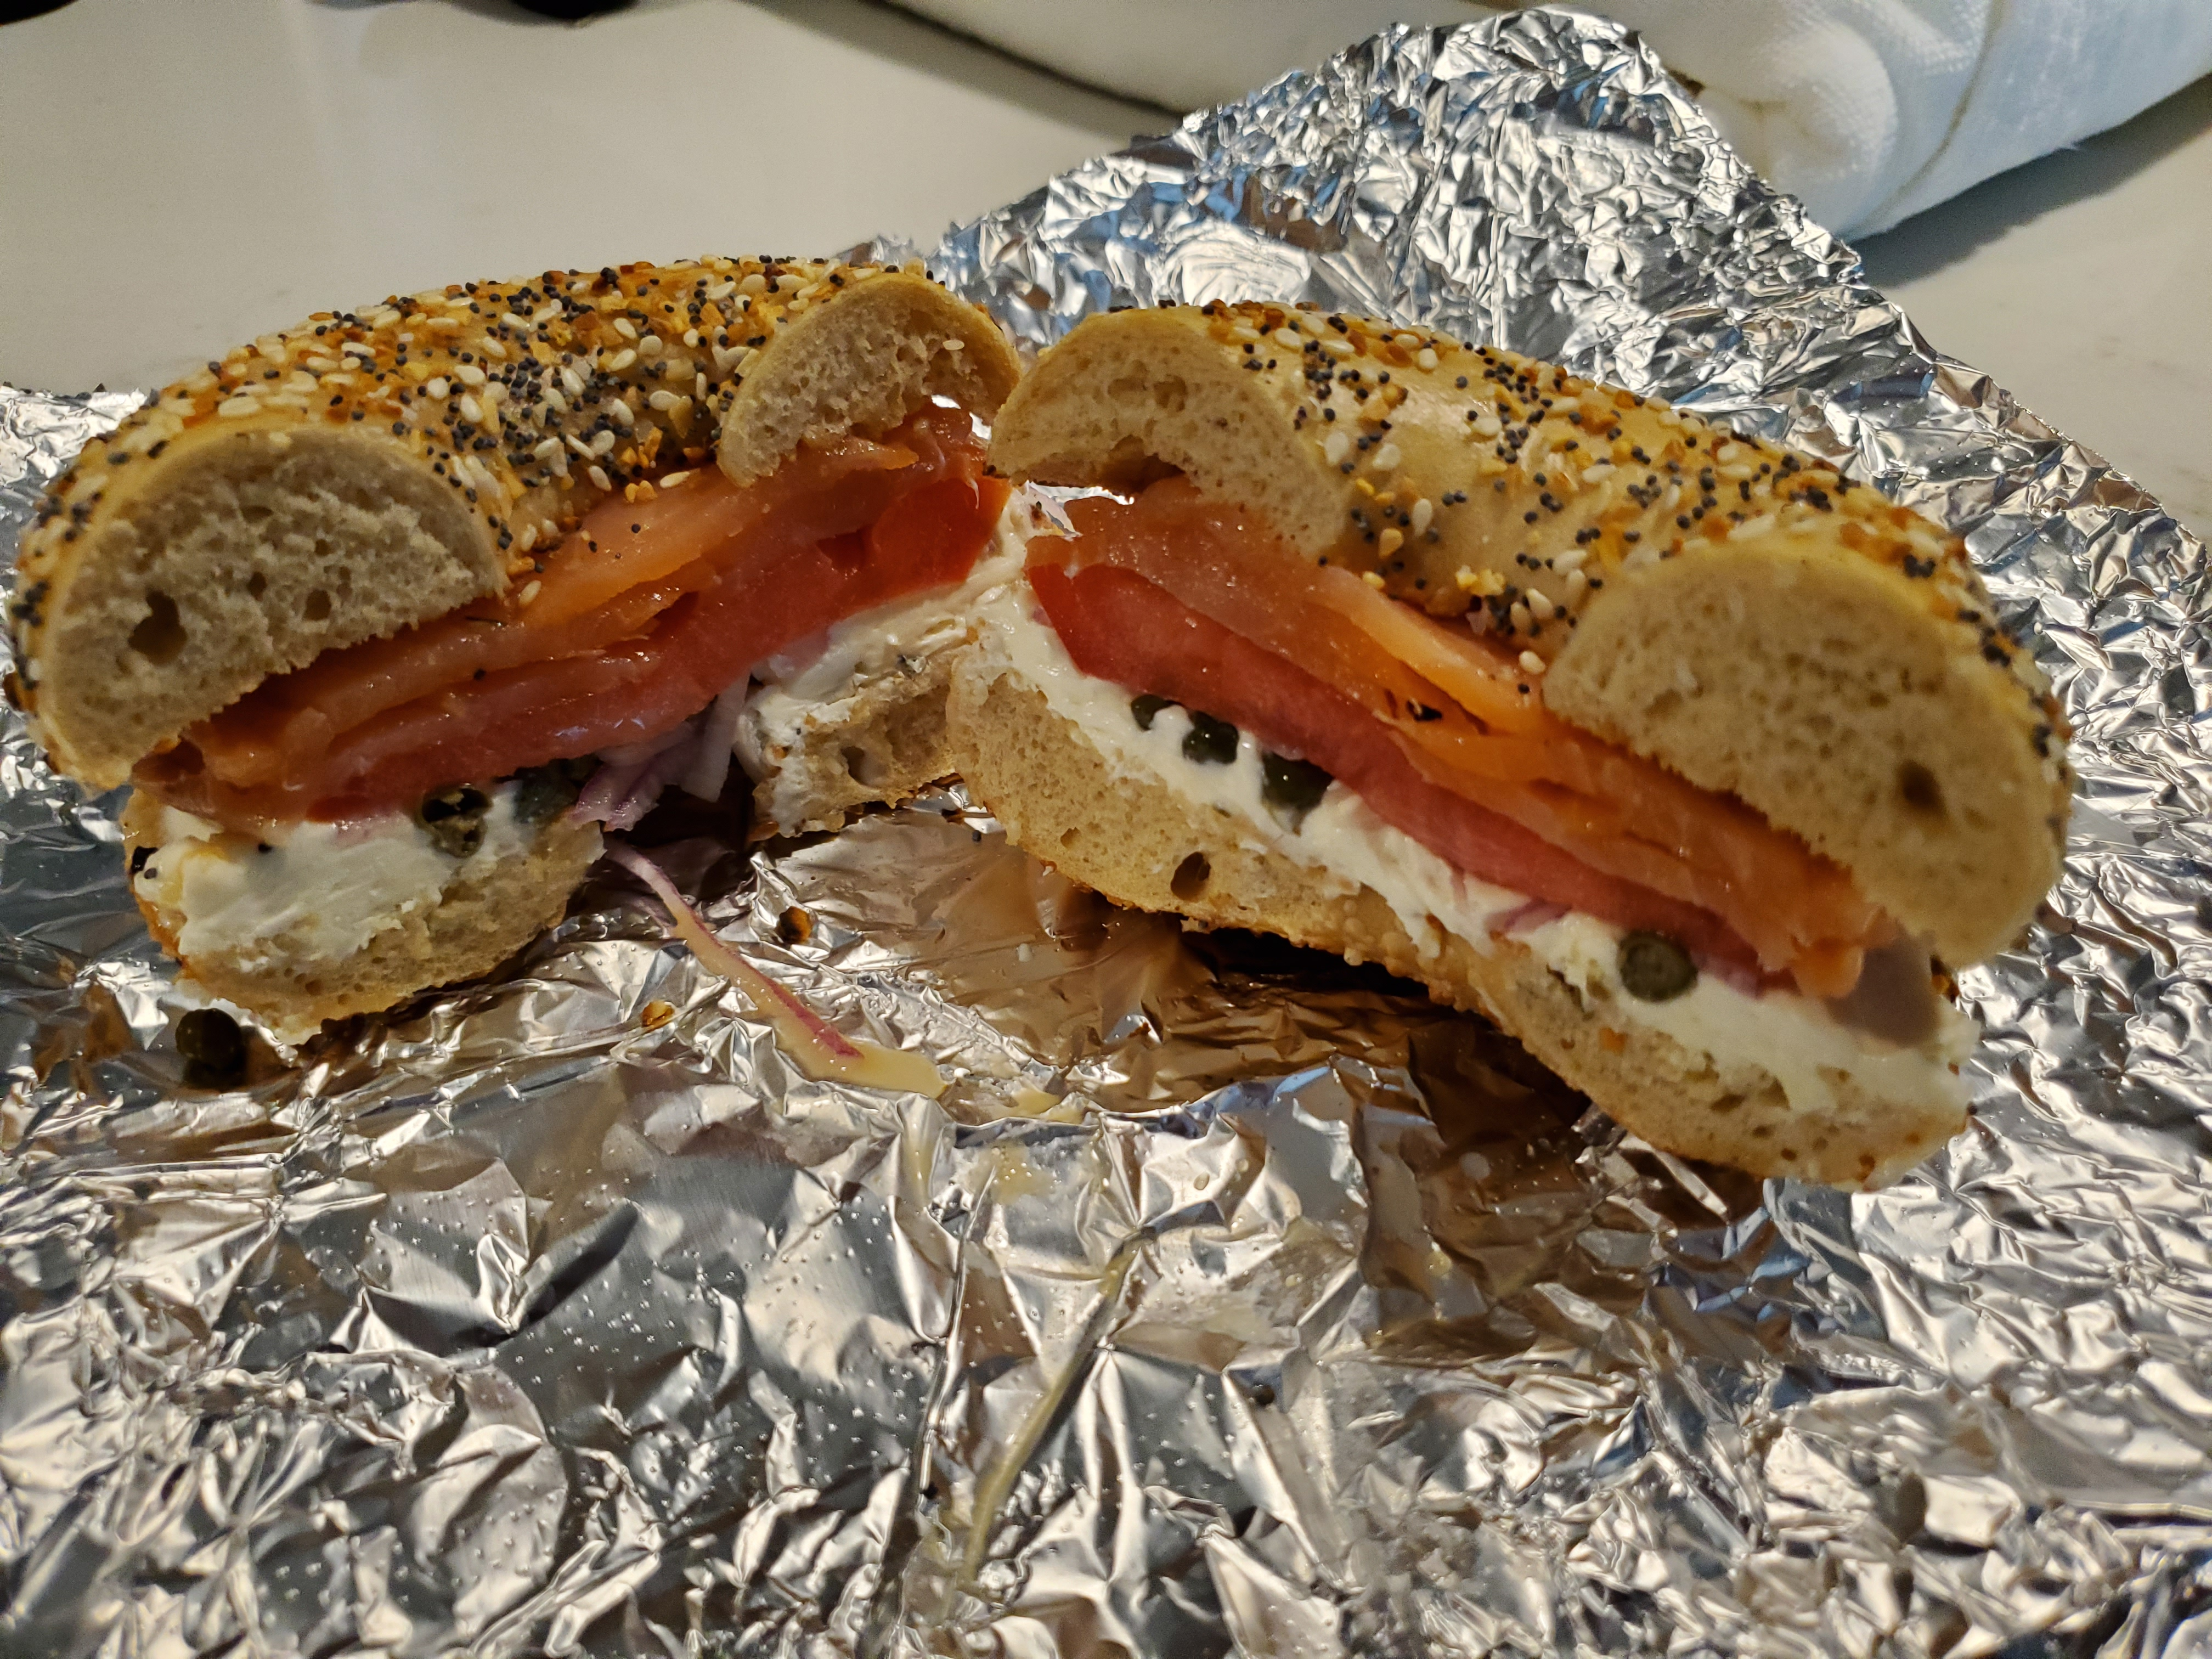 Rockstar Bagels - The Lox with the Works